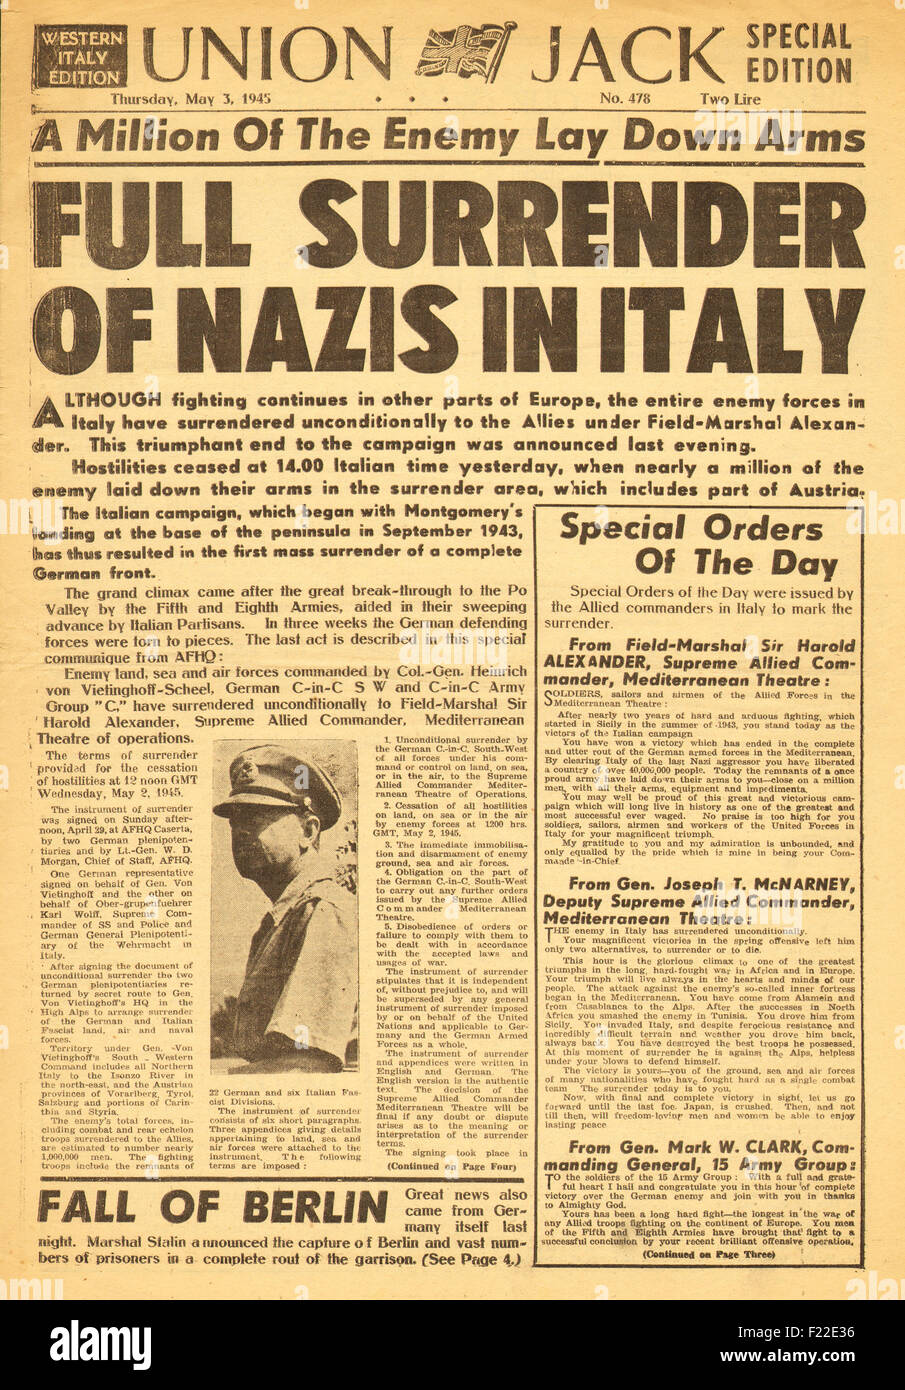 1945 Union Jack British Military Newspaper Front Page Reporting German Forces Surrender In Italy